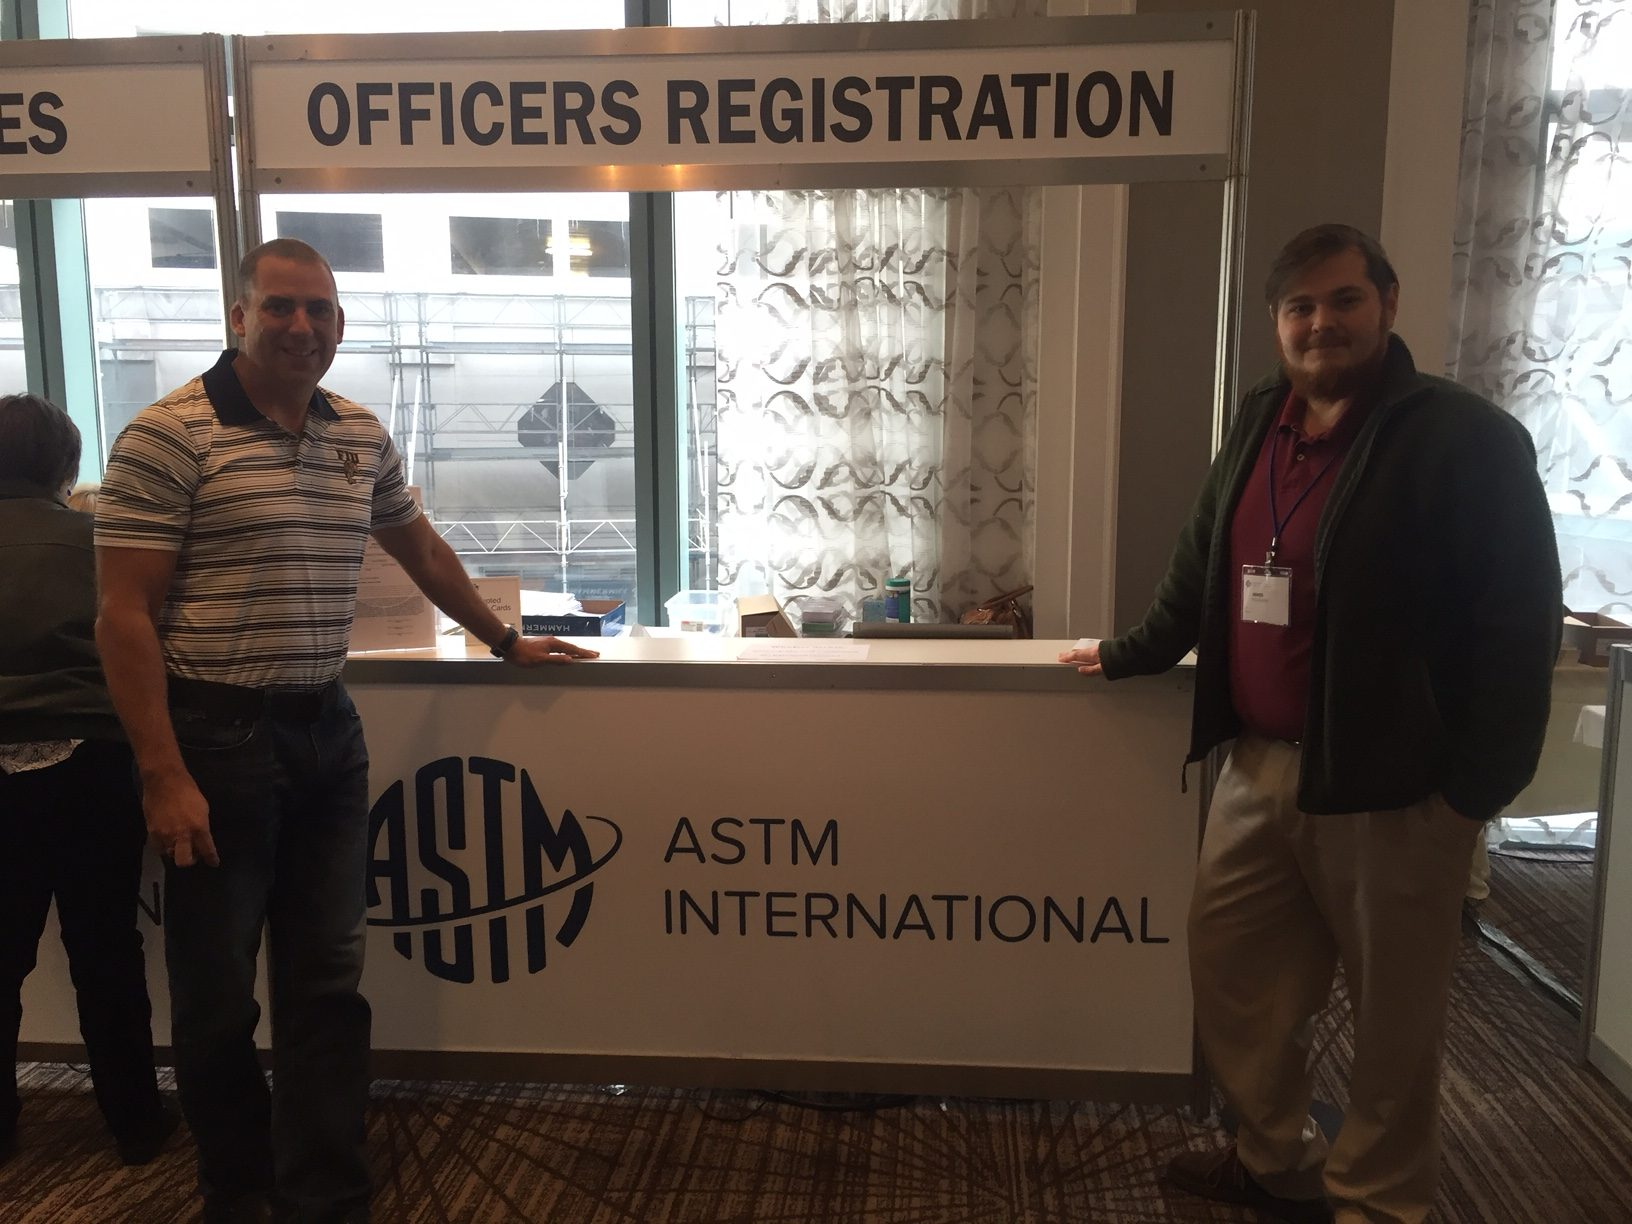 ARC's Joseph Sinicrope at ASTM International Conference